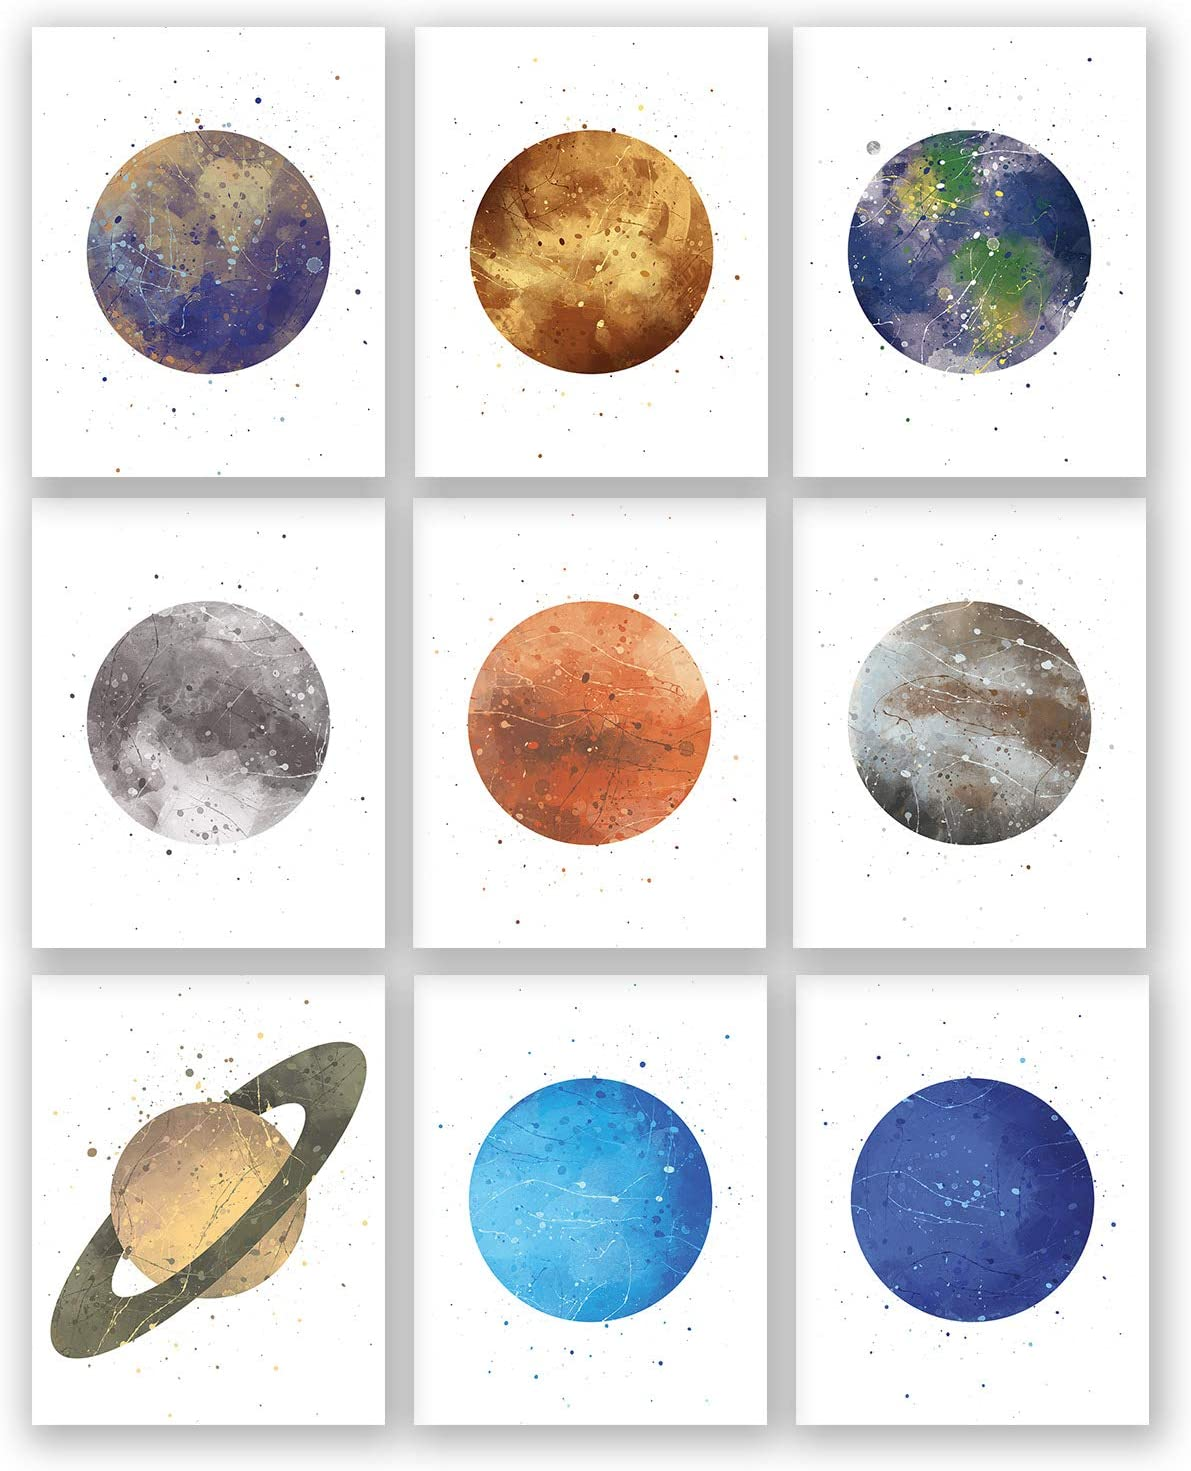 Set of 9 Posters with Planets on Night Sky -Mercury- Venus - Moon - Earth - Mars -Jupiter - Saturn - Uranus - Neptune - Watercolor Art - Solar System Print - Bedroom Wall Decoration (White, 11x14)